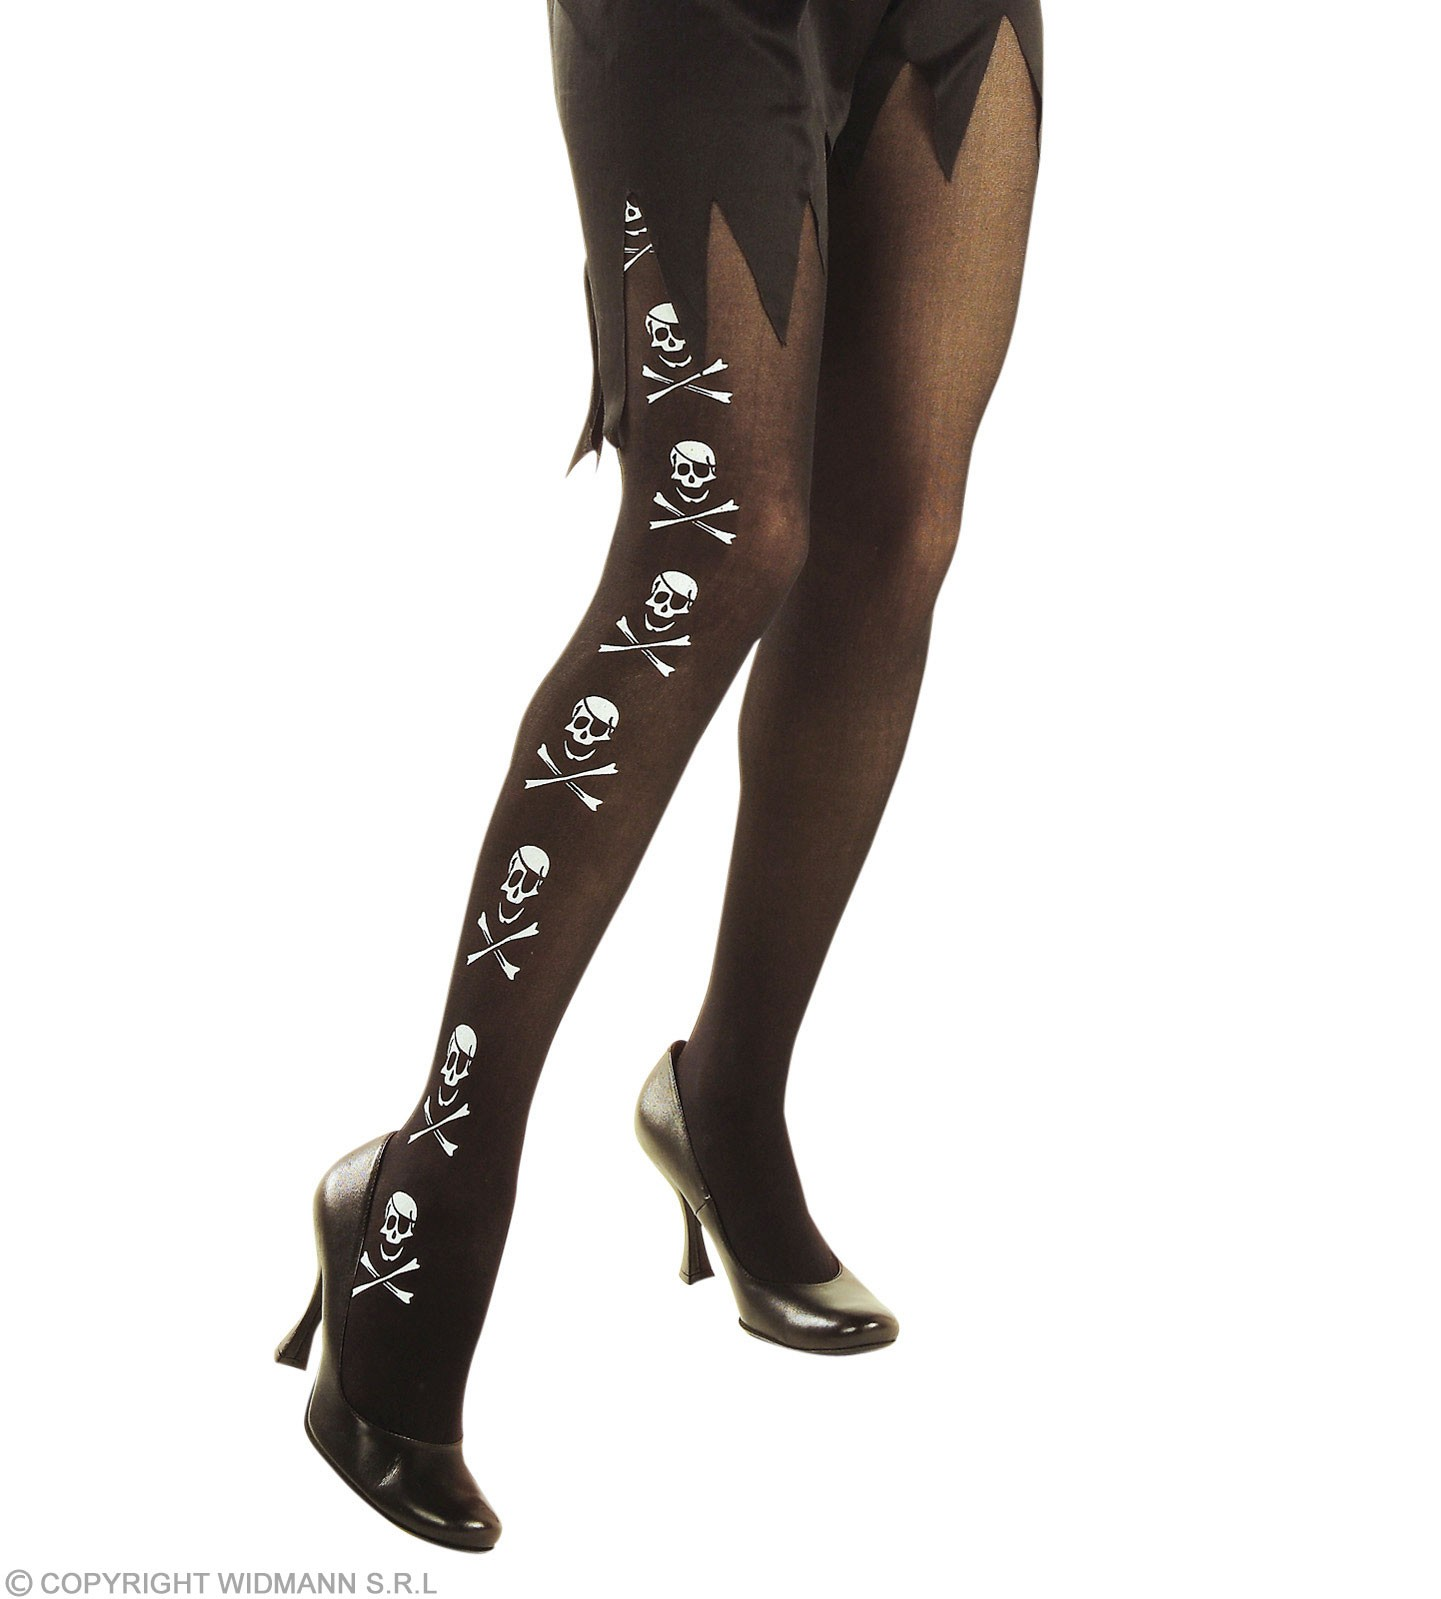 Black Pantyhose W/Skulls And Bones - Fancy Dress